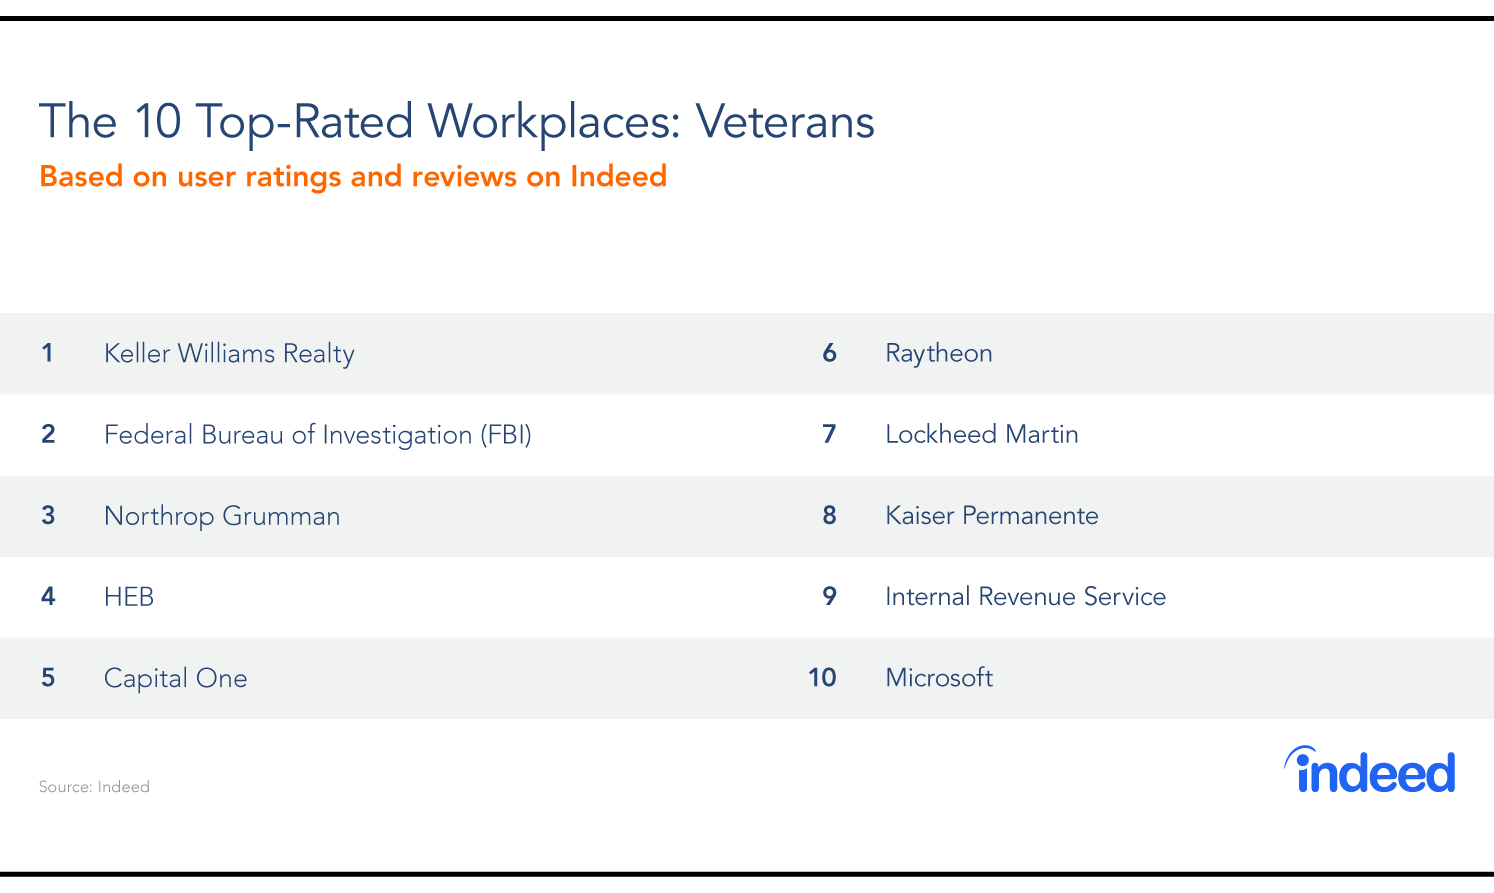 The Top-Rated Workplaces For Veterans In 2019